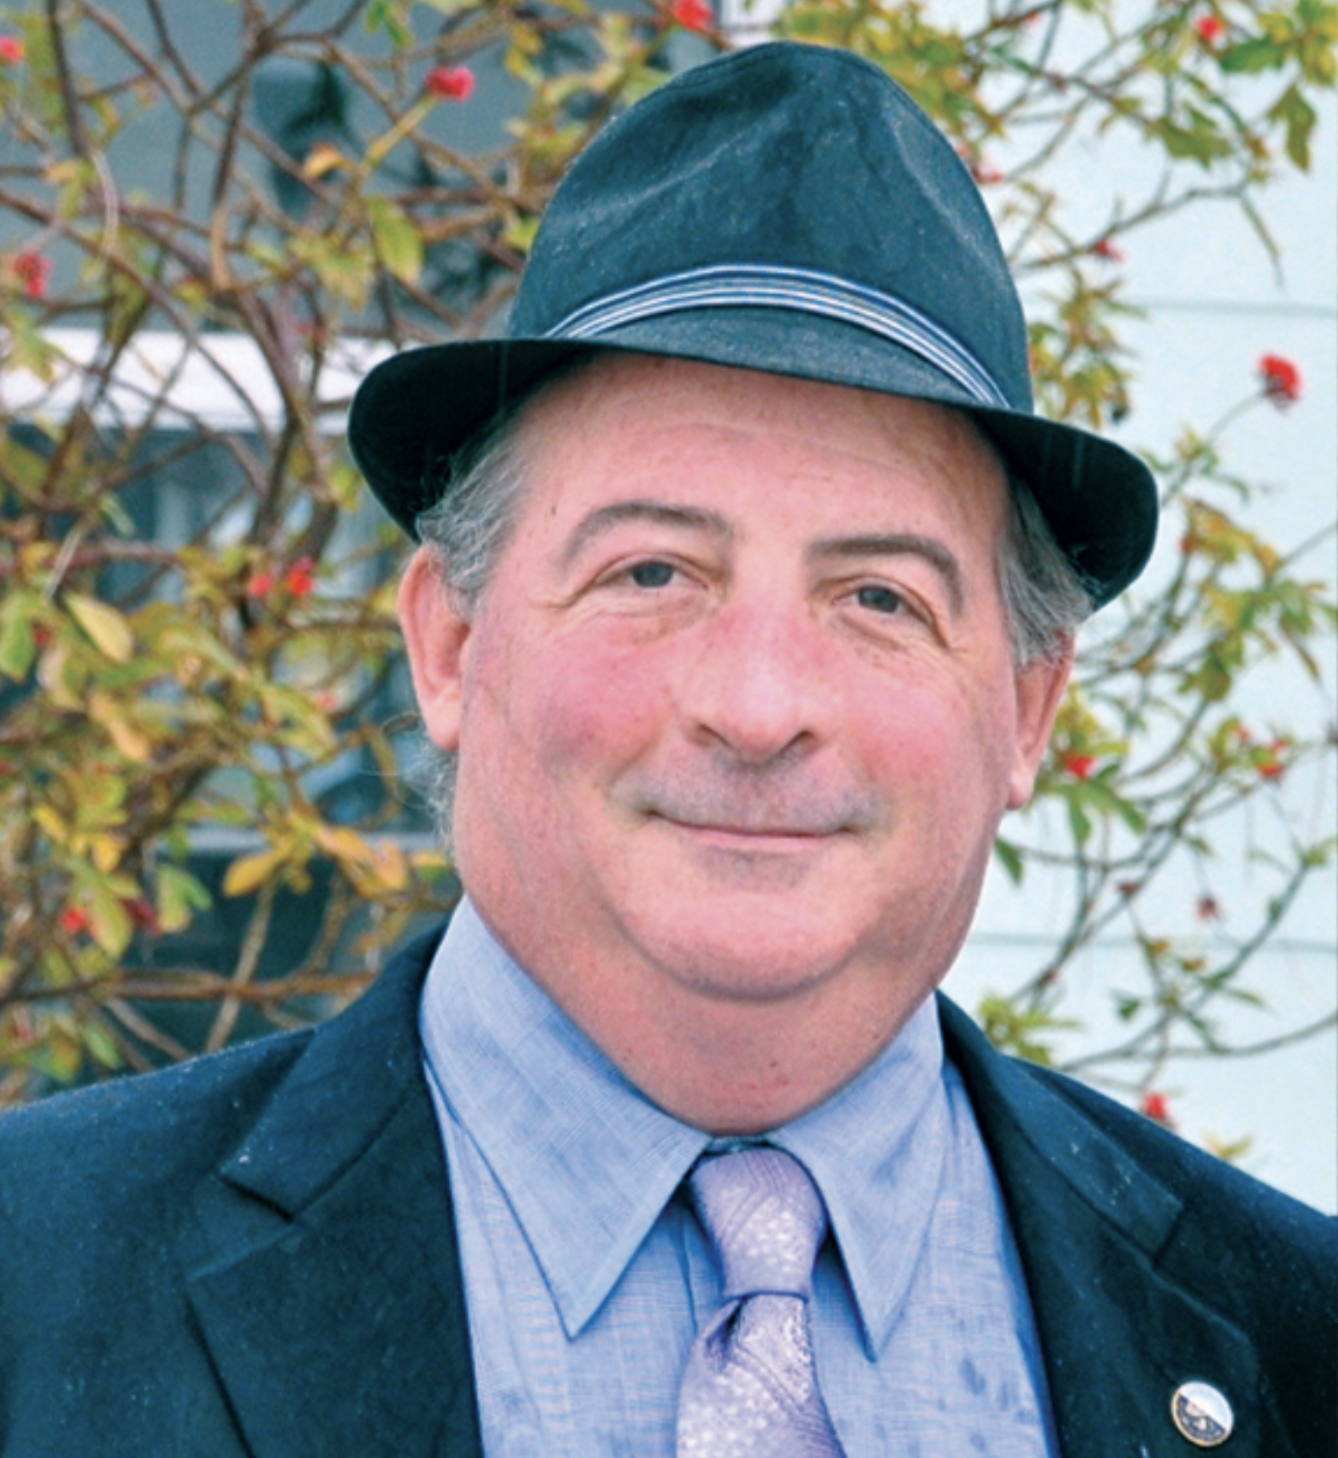 A headshot of a man in a suit, tie and fedora hat.